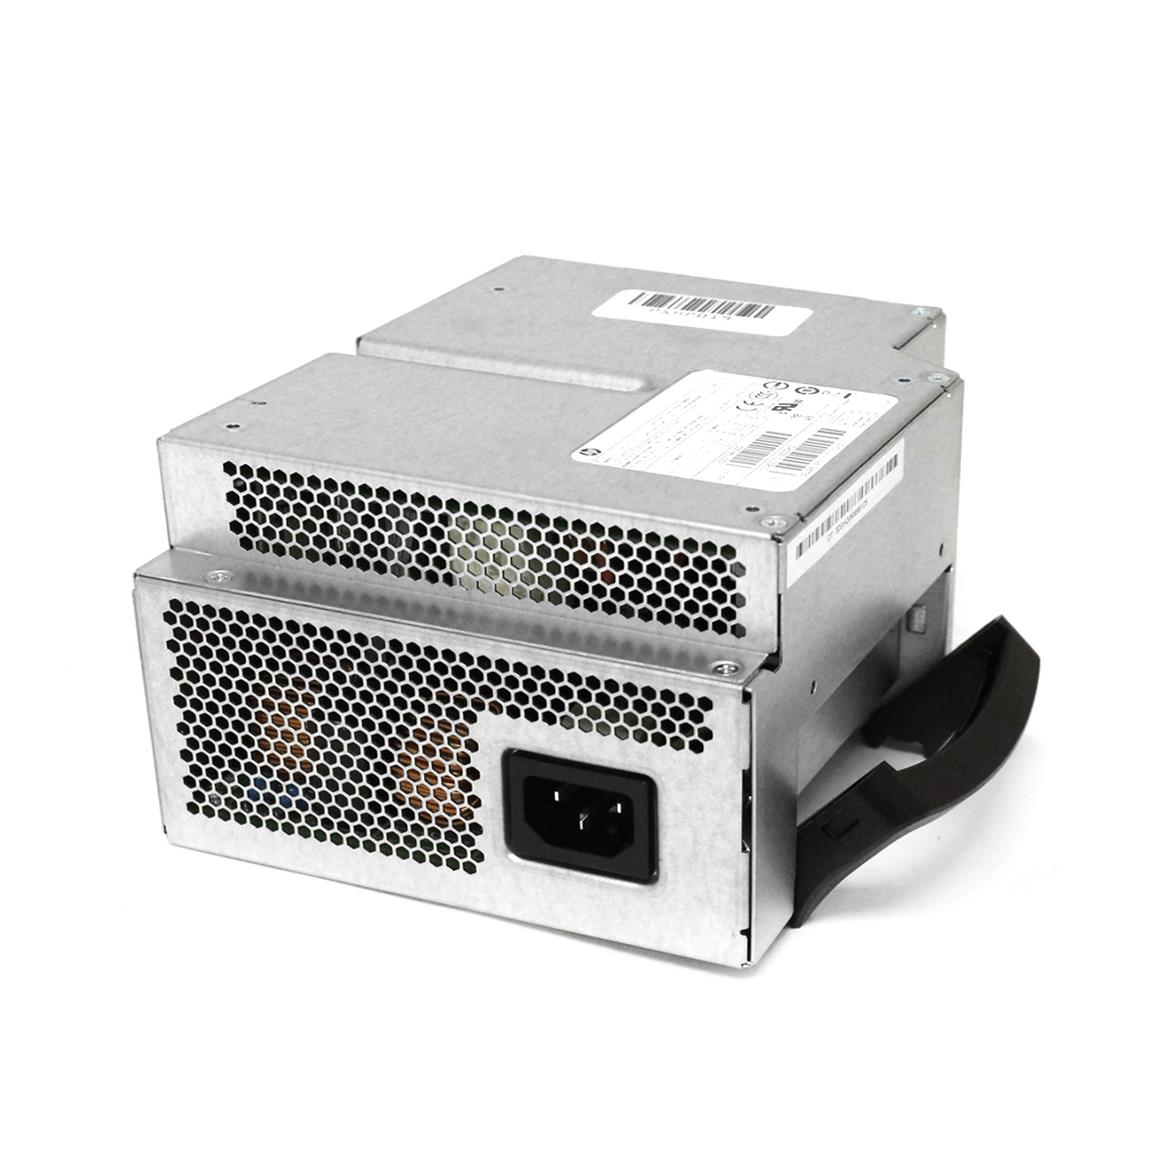 HP Workstation Z620 MT 800W Power Supply PSU 717019-001 623194-002